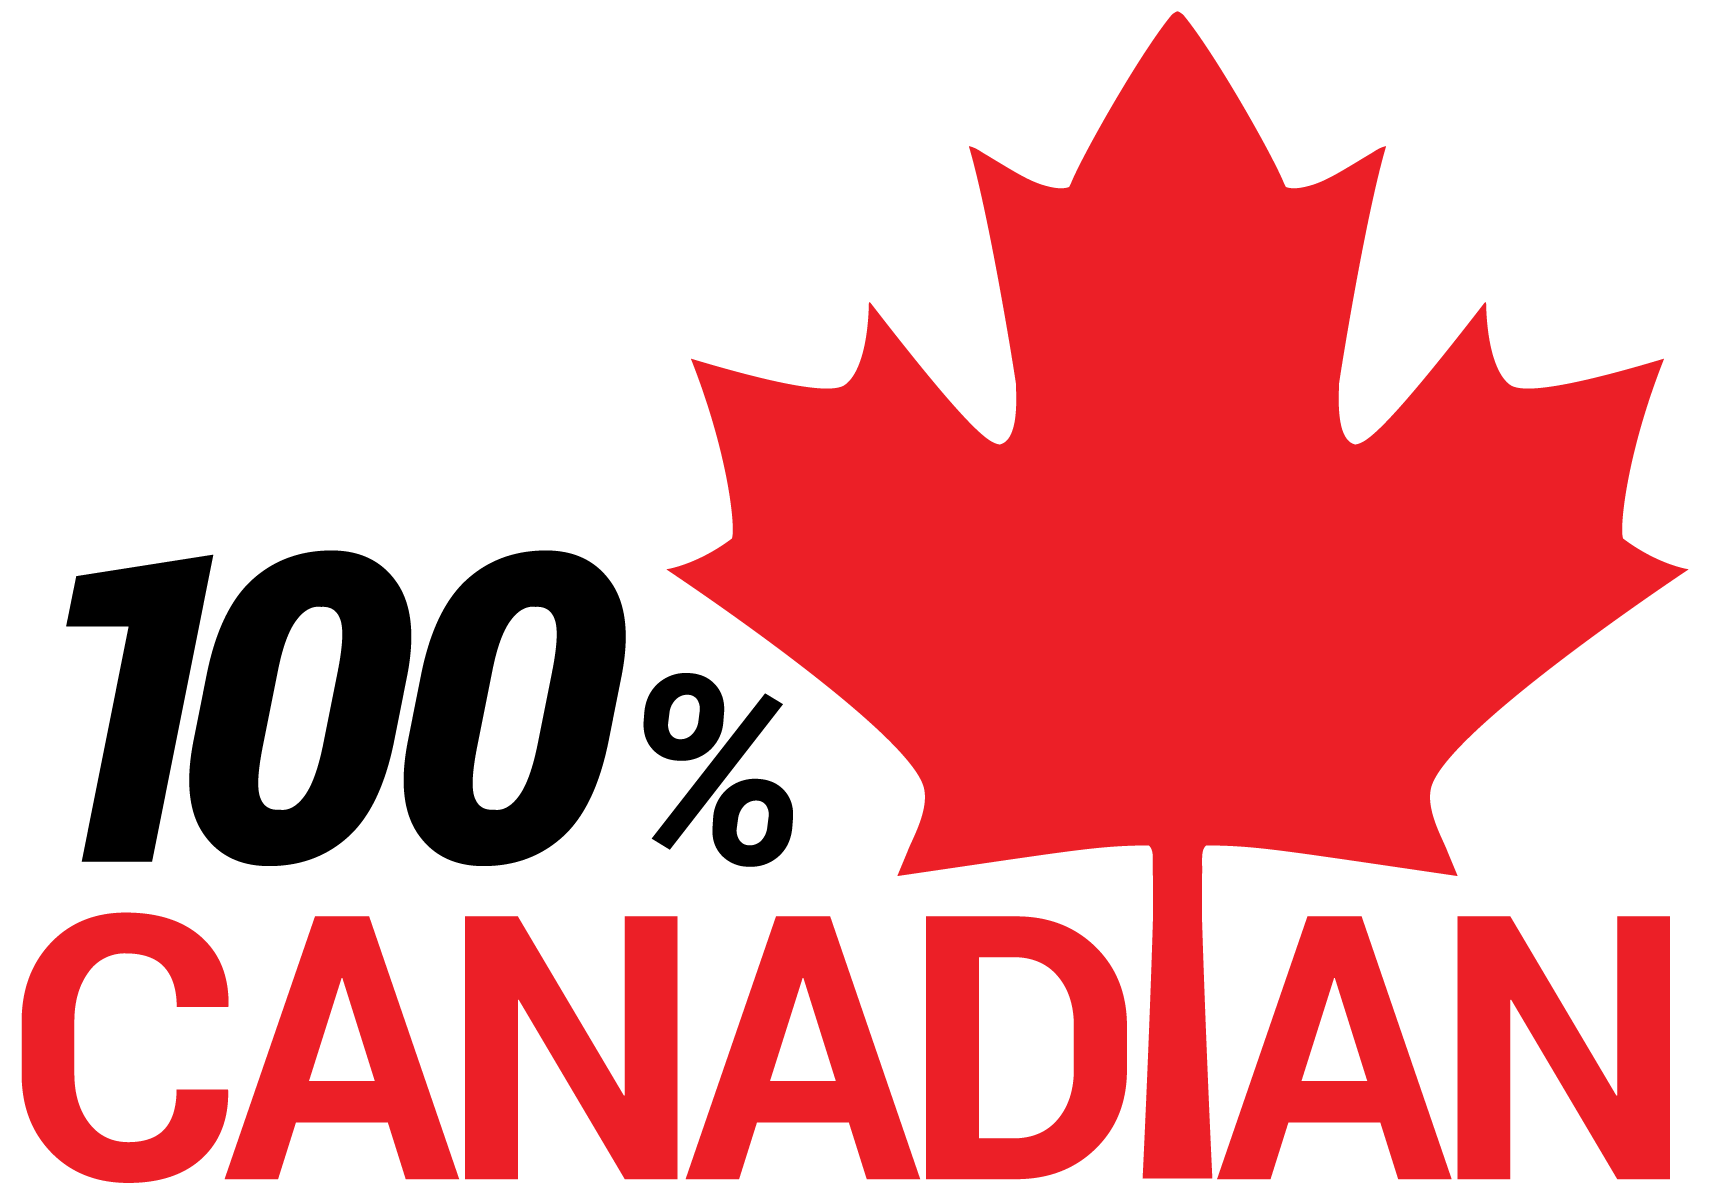 100% Canadian